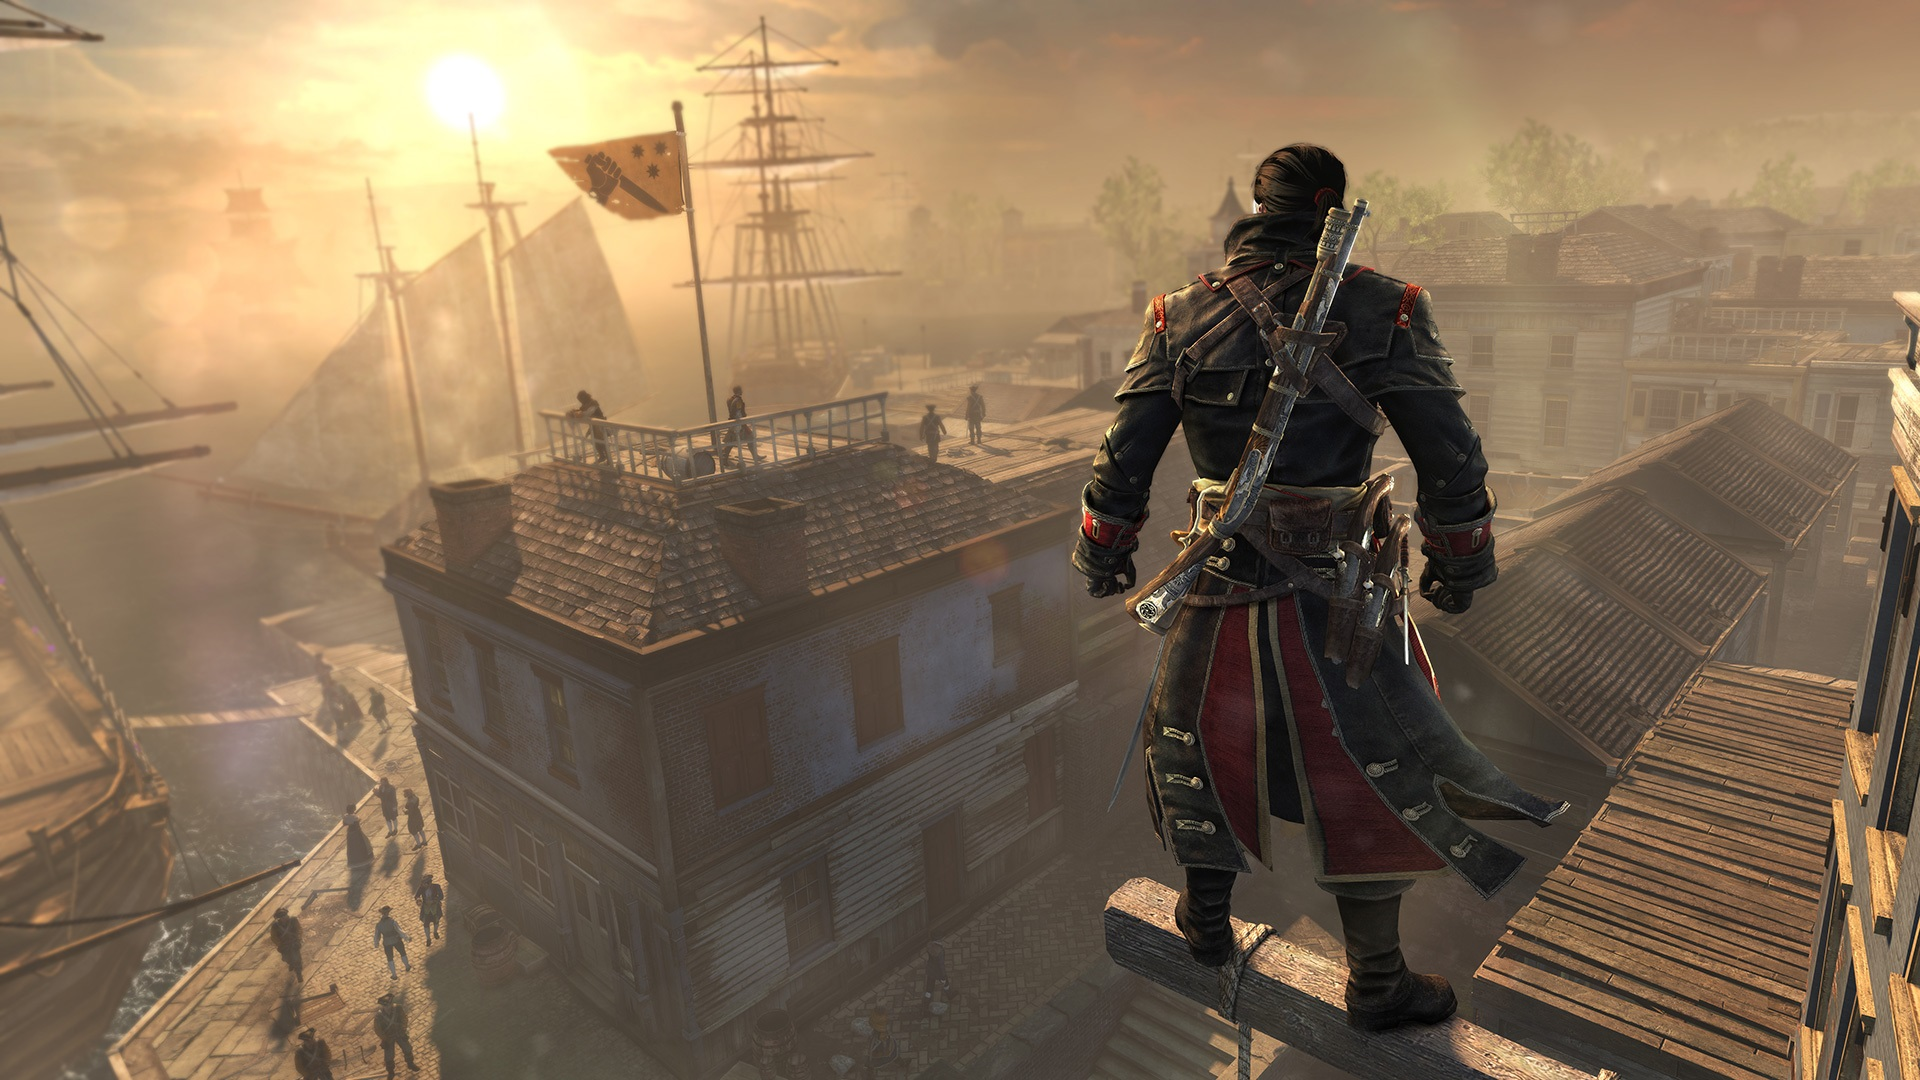 Assassins creed rogue ps3 xbox 360 pc game uscita e novita di gioco_2